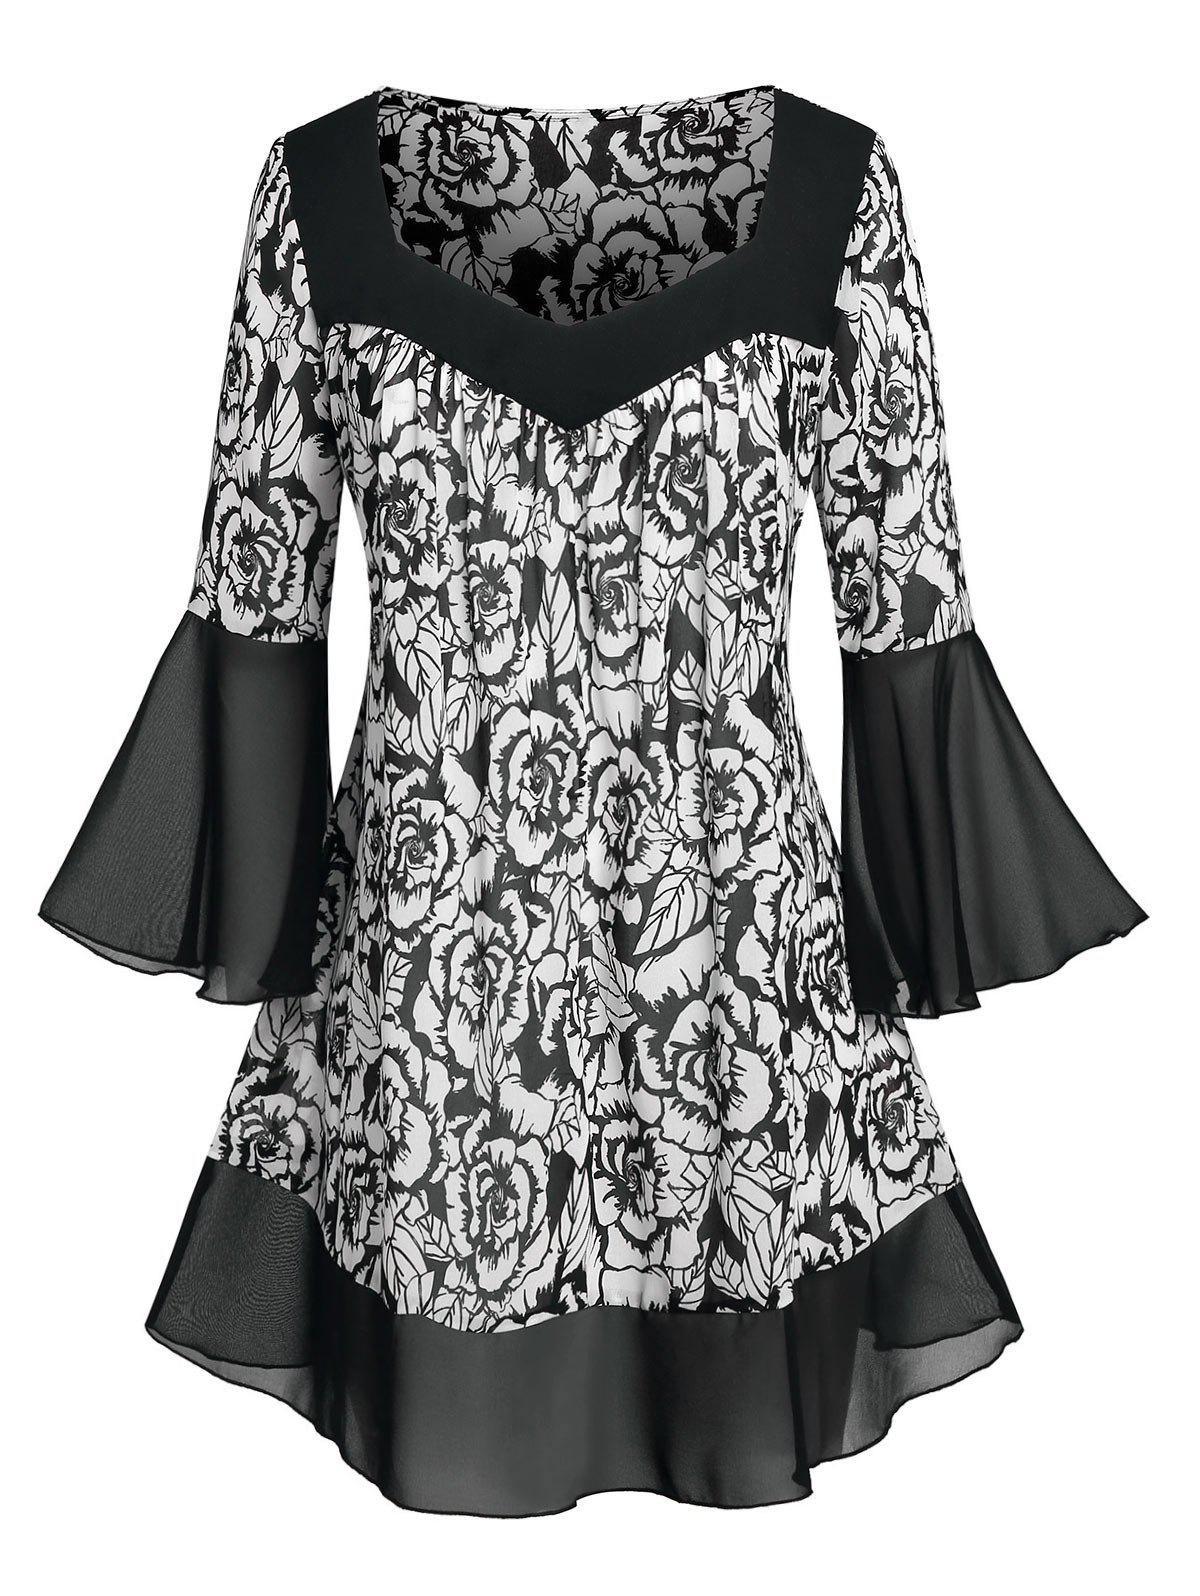 Plus Size Flower Print Bell Sleeve Flounce Tunic Blouse - BLACK 5X